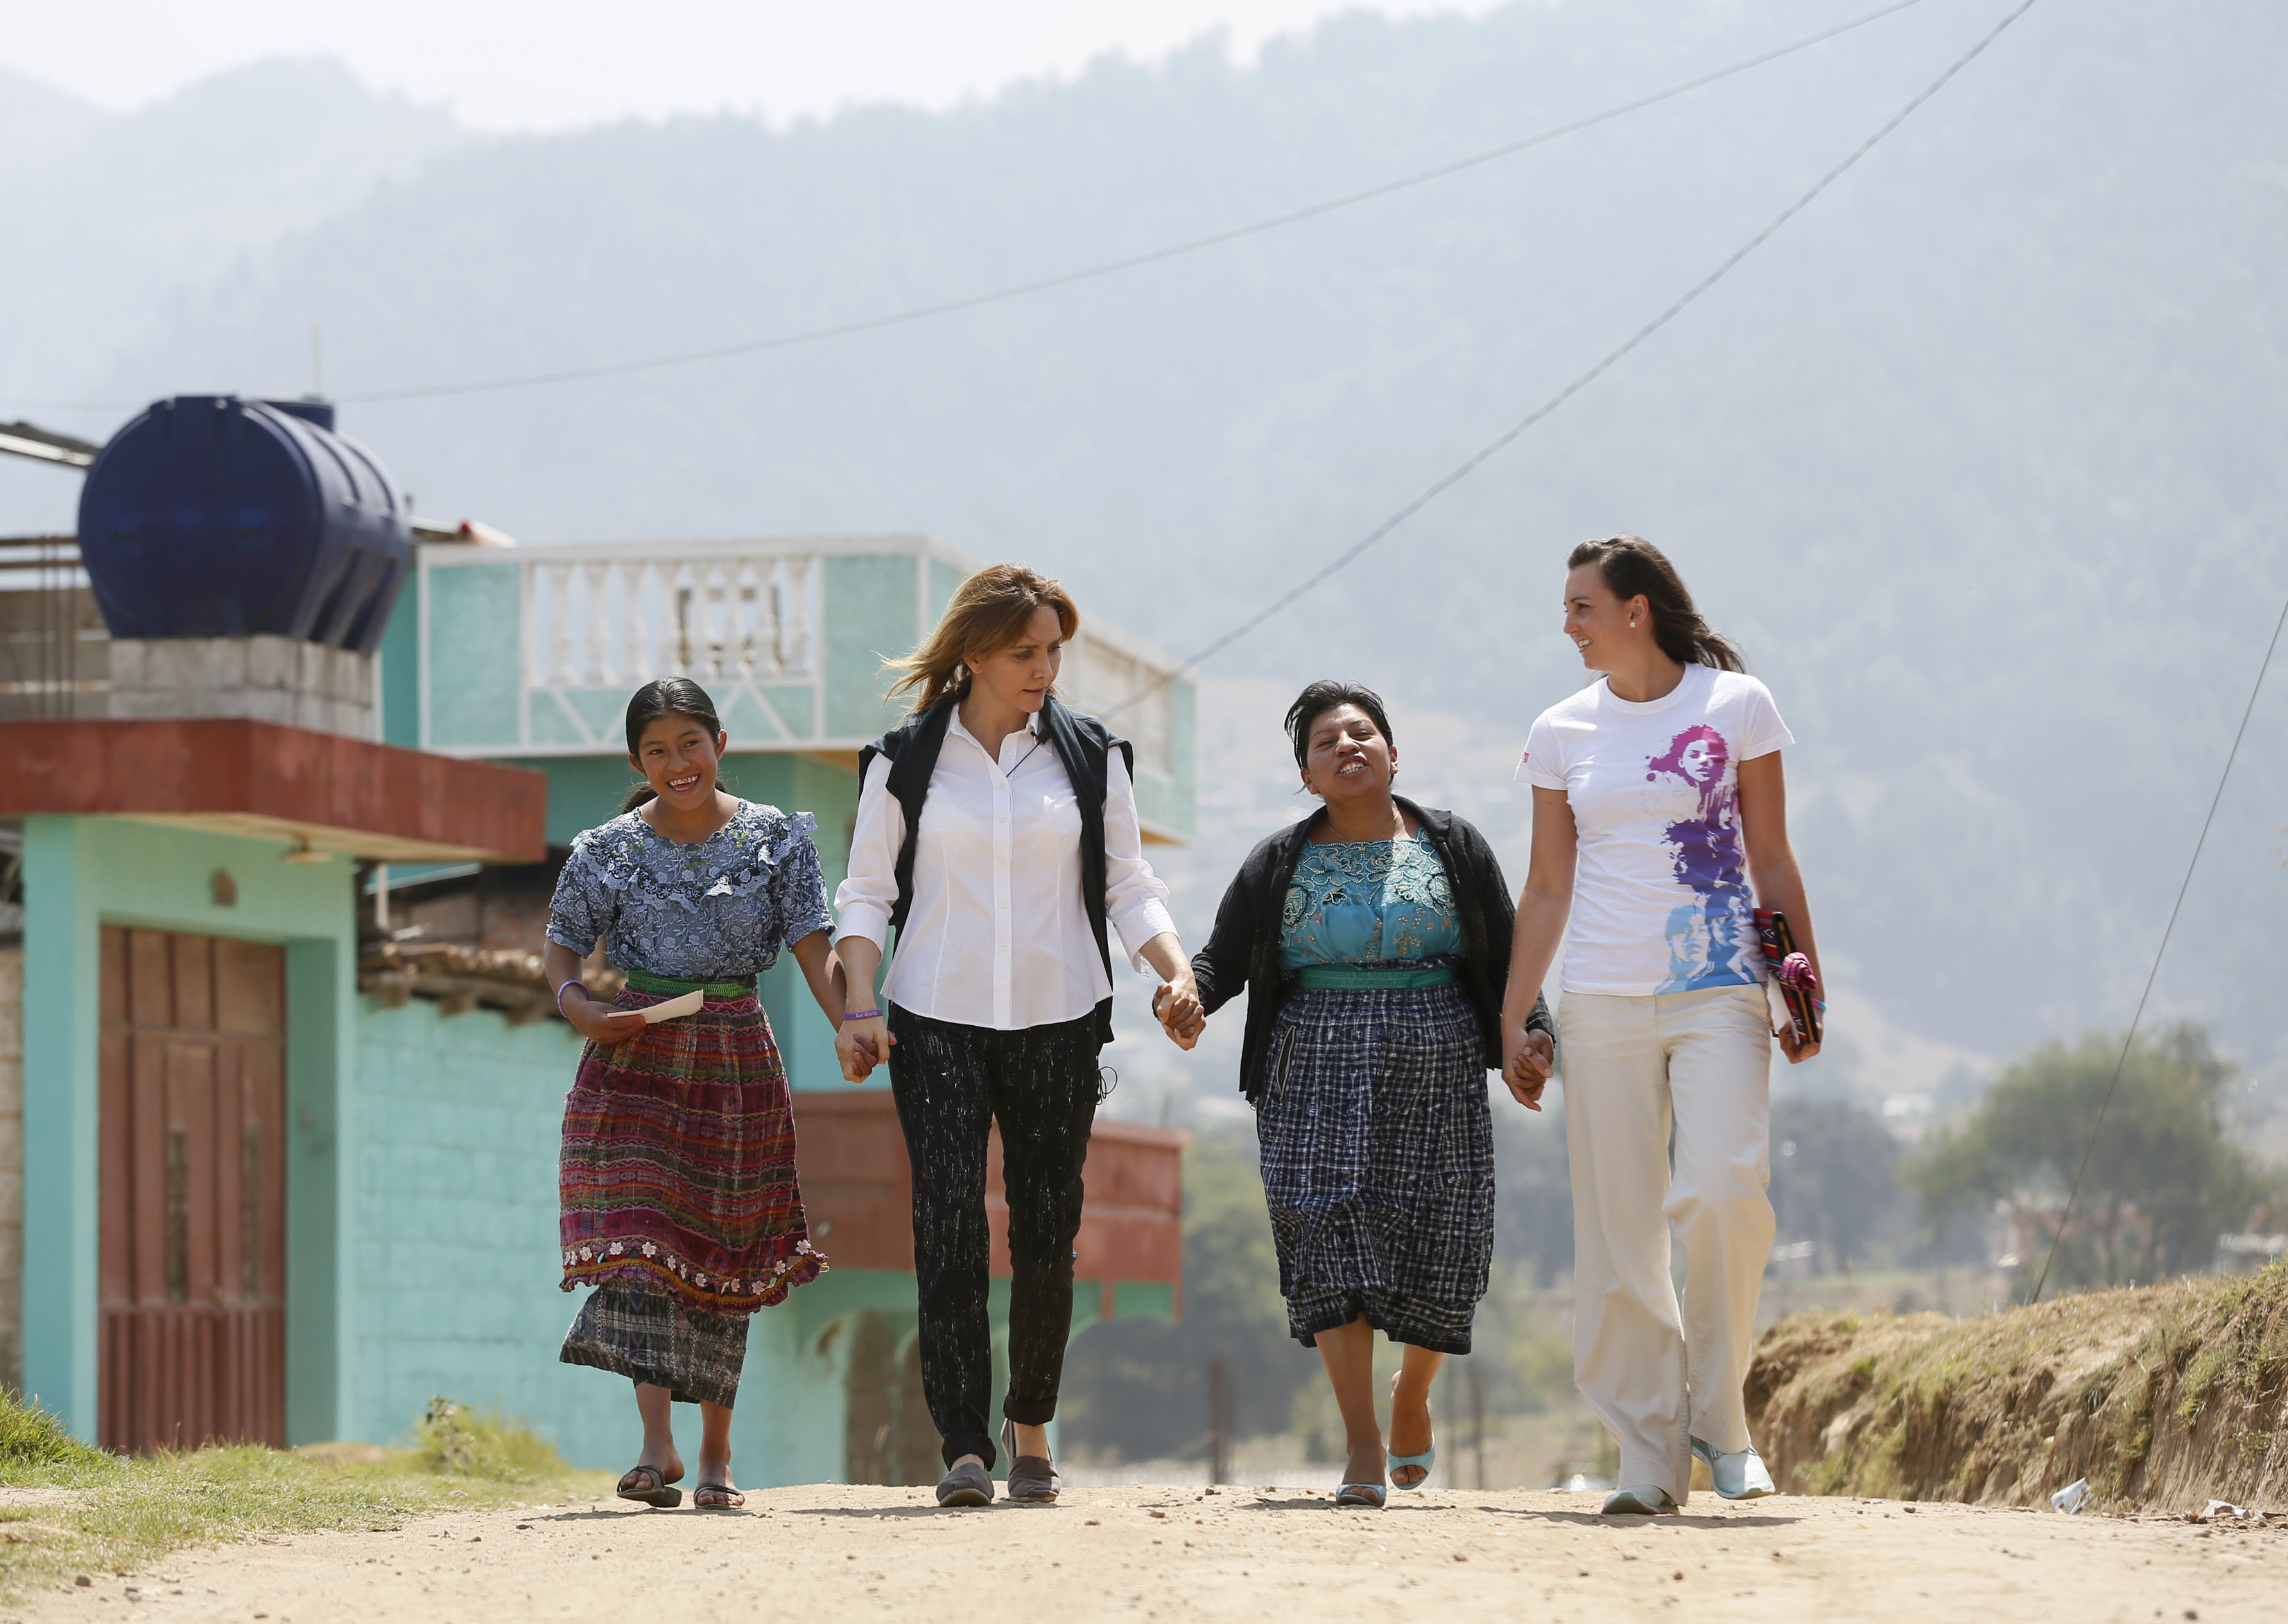 Angelica Fuentes, CEO of Omnilife and Founder of Angelissima, second left, and Olympic gold medalist, Rebecca Soni, right, share experiences with girls from Paxtoca during a visit from Girl Up, a campaign of the United Nations Foundation, during a trip to Guatemala, to learn more about UN programs that help adolescent girls receive an education, see a doctor, and stay safe from violence, Guatemala, April 18, 2013. (INSIDER IMAGES/Stuart Ramson for UN Foundation)